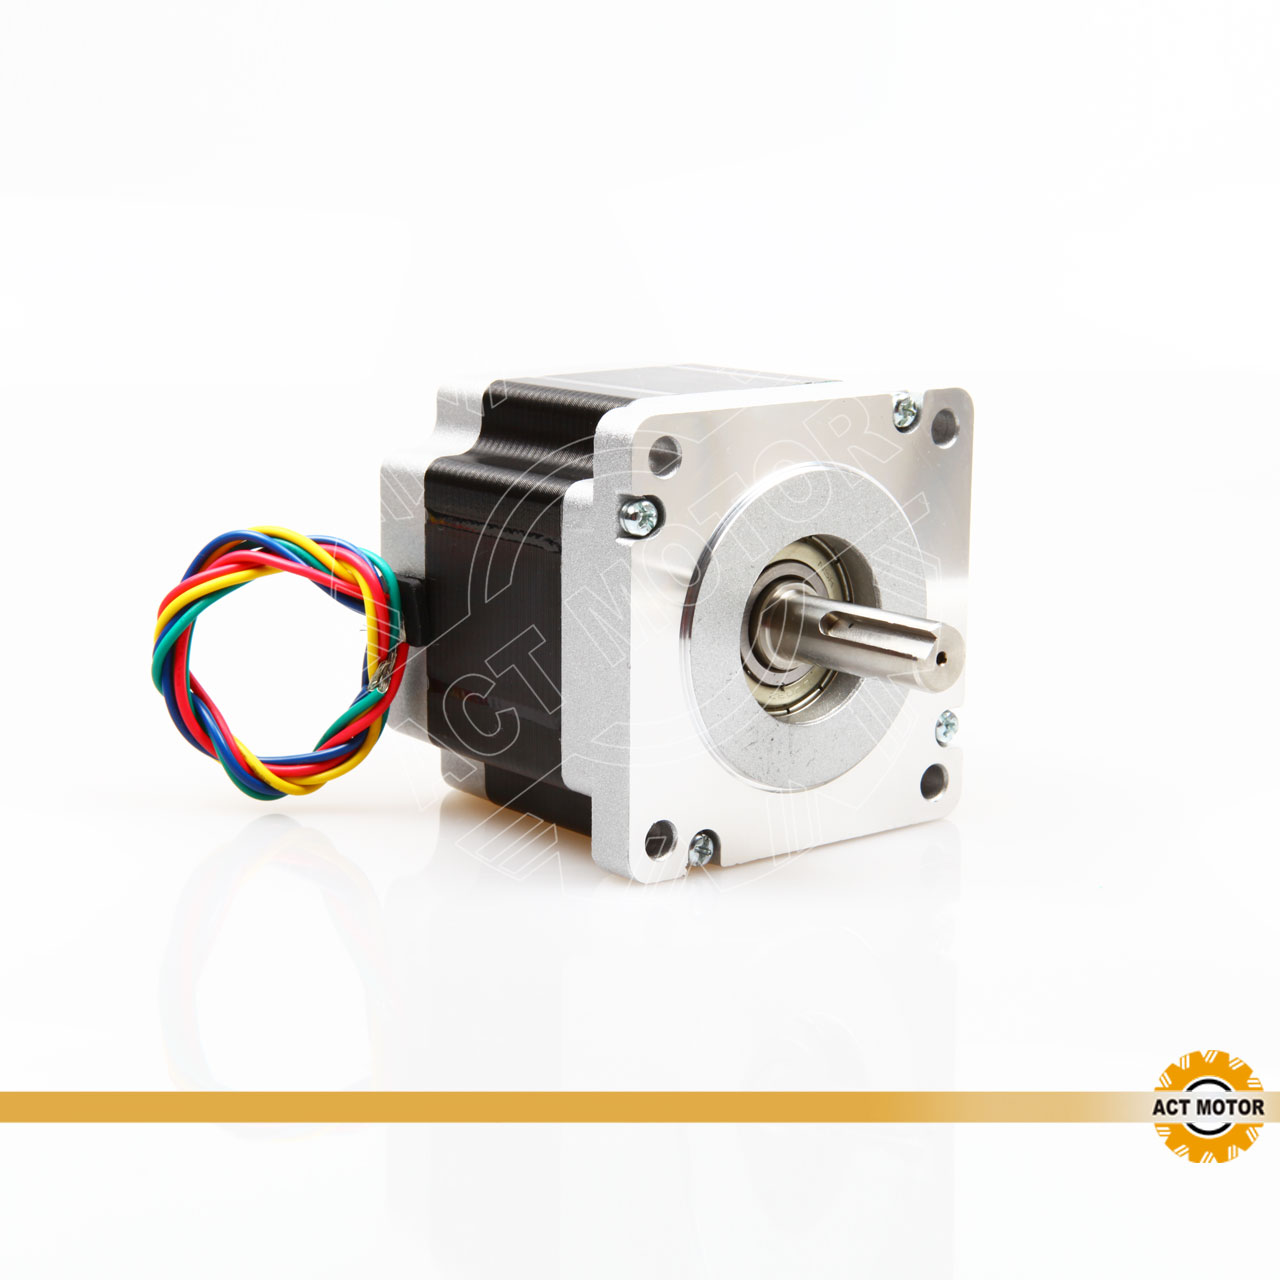 Two-Phase, FoTwo-Phase, Four-Phase Hybrid Stepper Motor 34HS8450-45ur-Phase Hybrid Stepper Motor 34HS8450-45